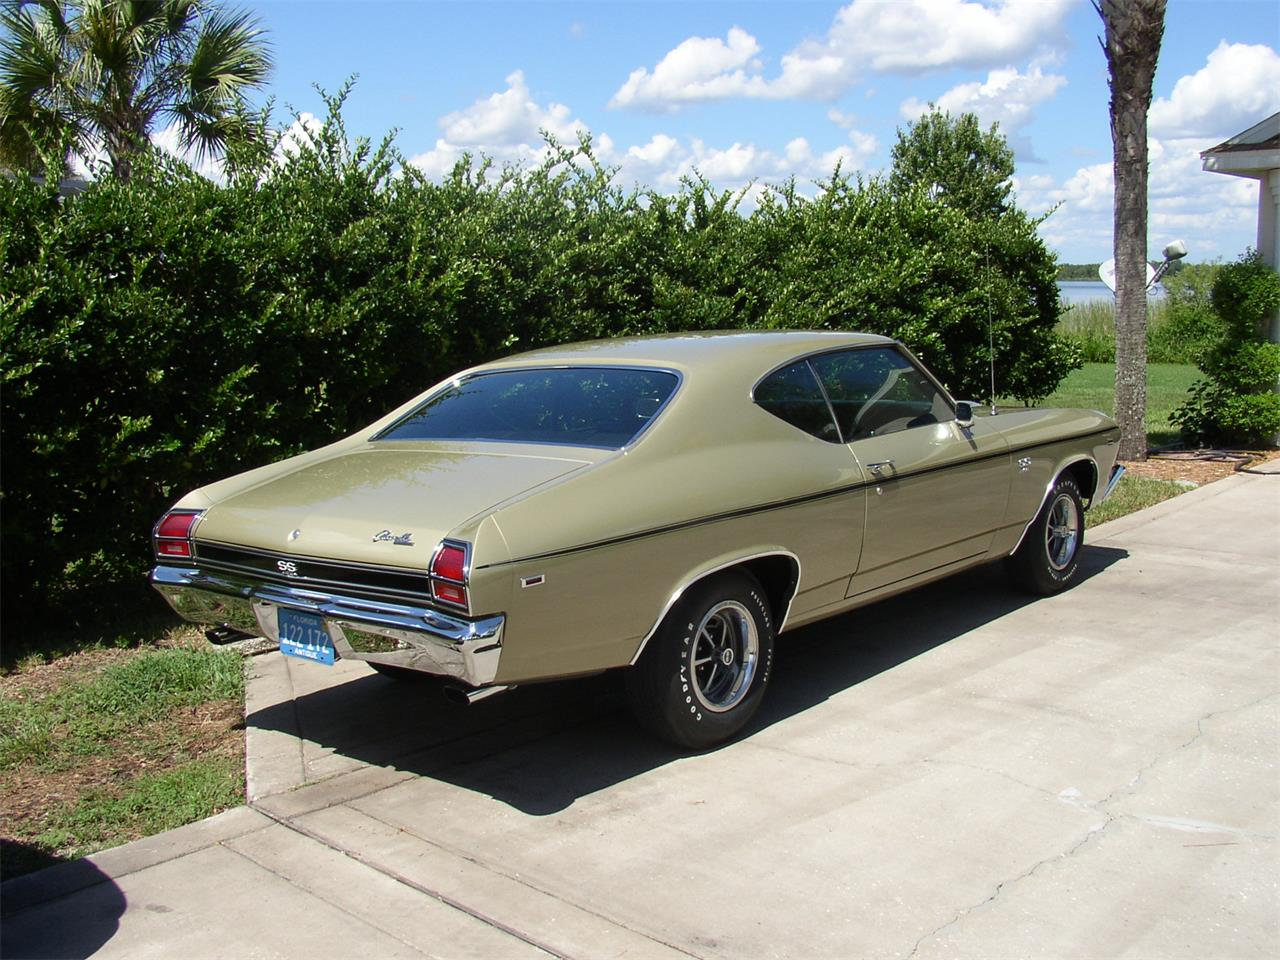 Large Picture of '69 Chevrolet Chevelle Malibu - $42,500.00 - N21B